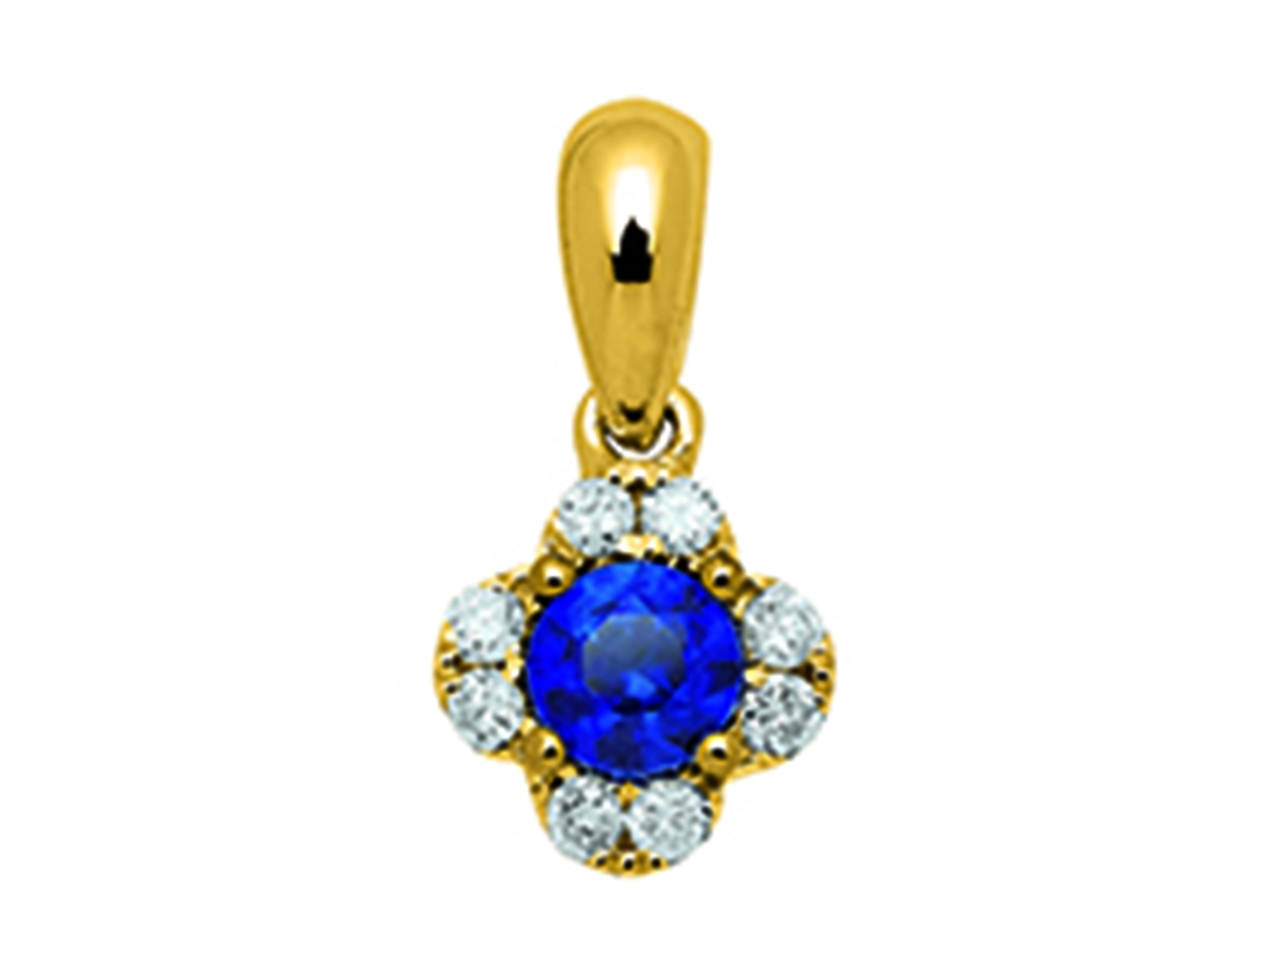 Pendentif Fleur Or jaune 18k, diamants 0,10ct, saphirs 0,25ct